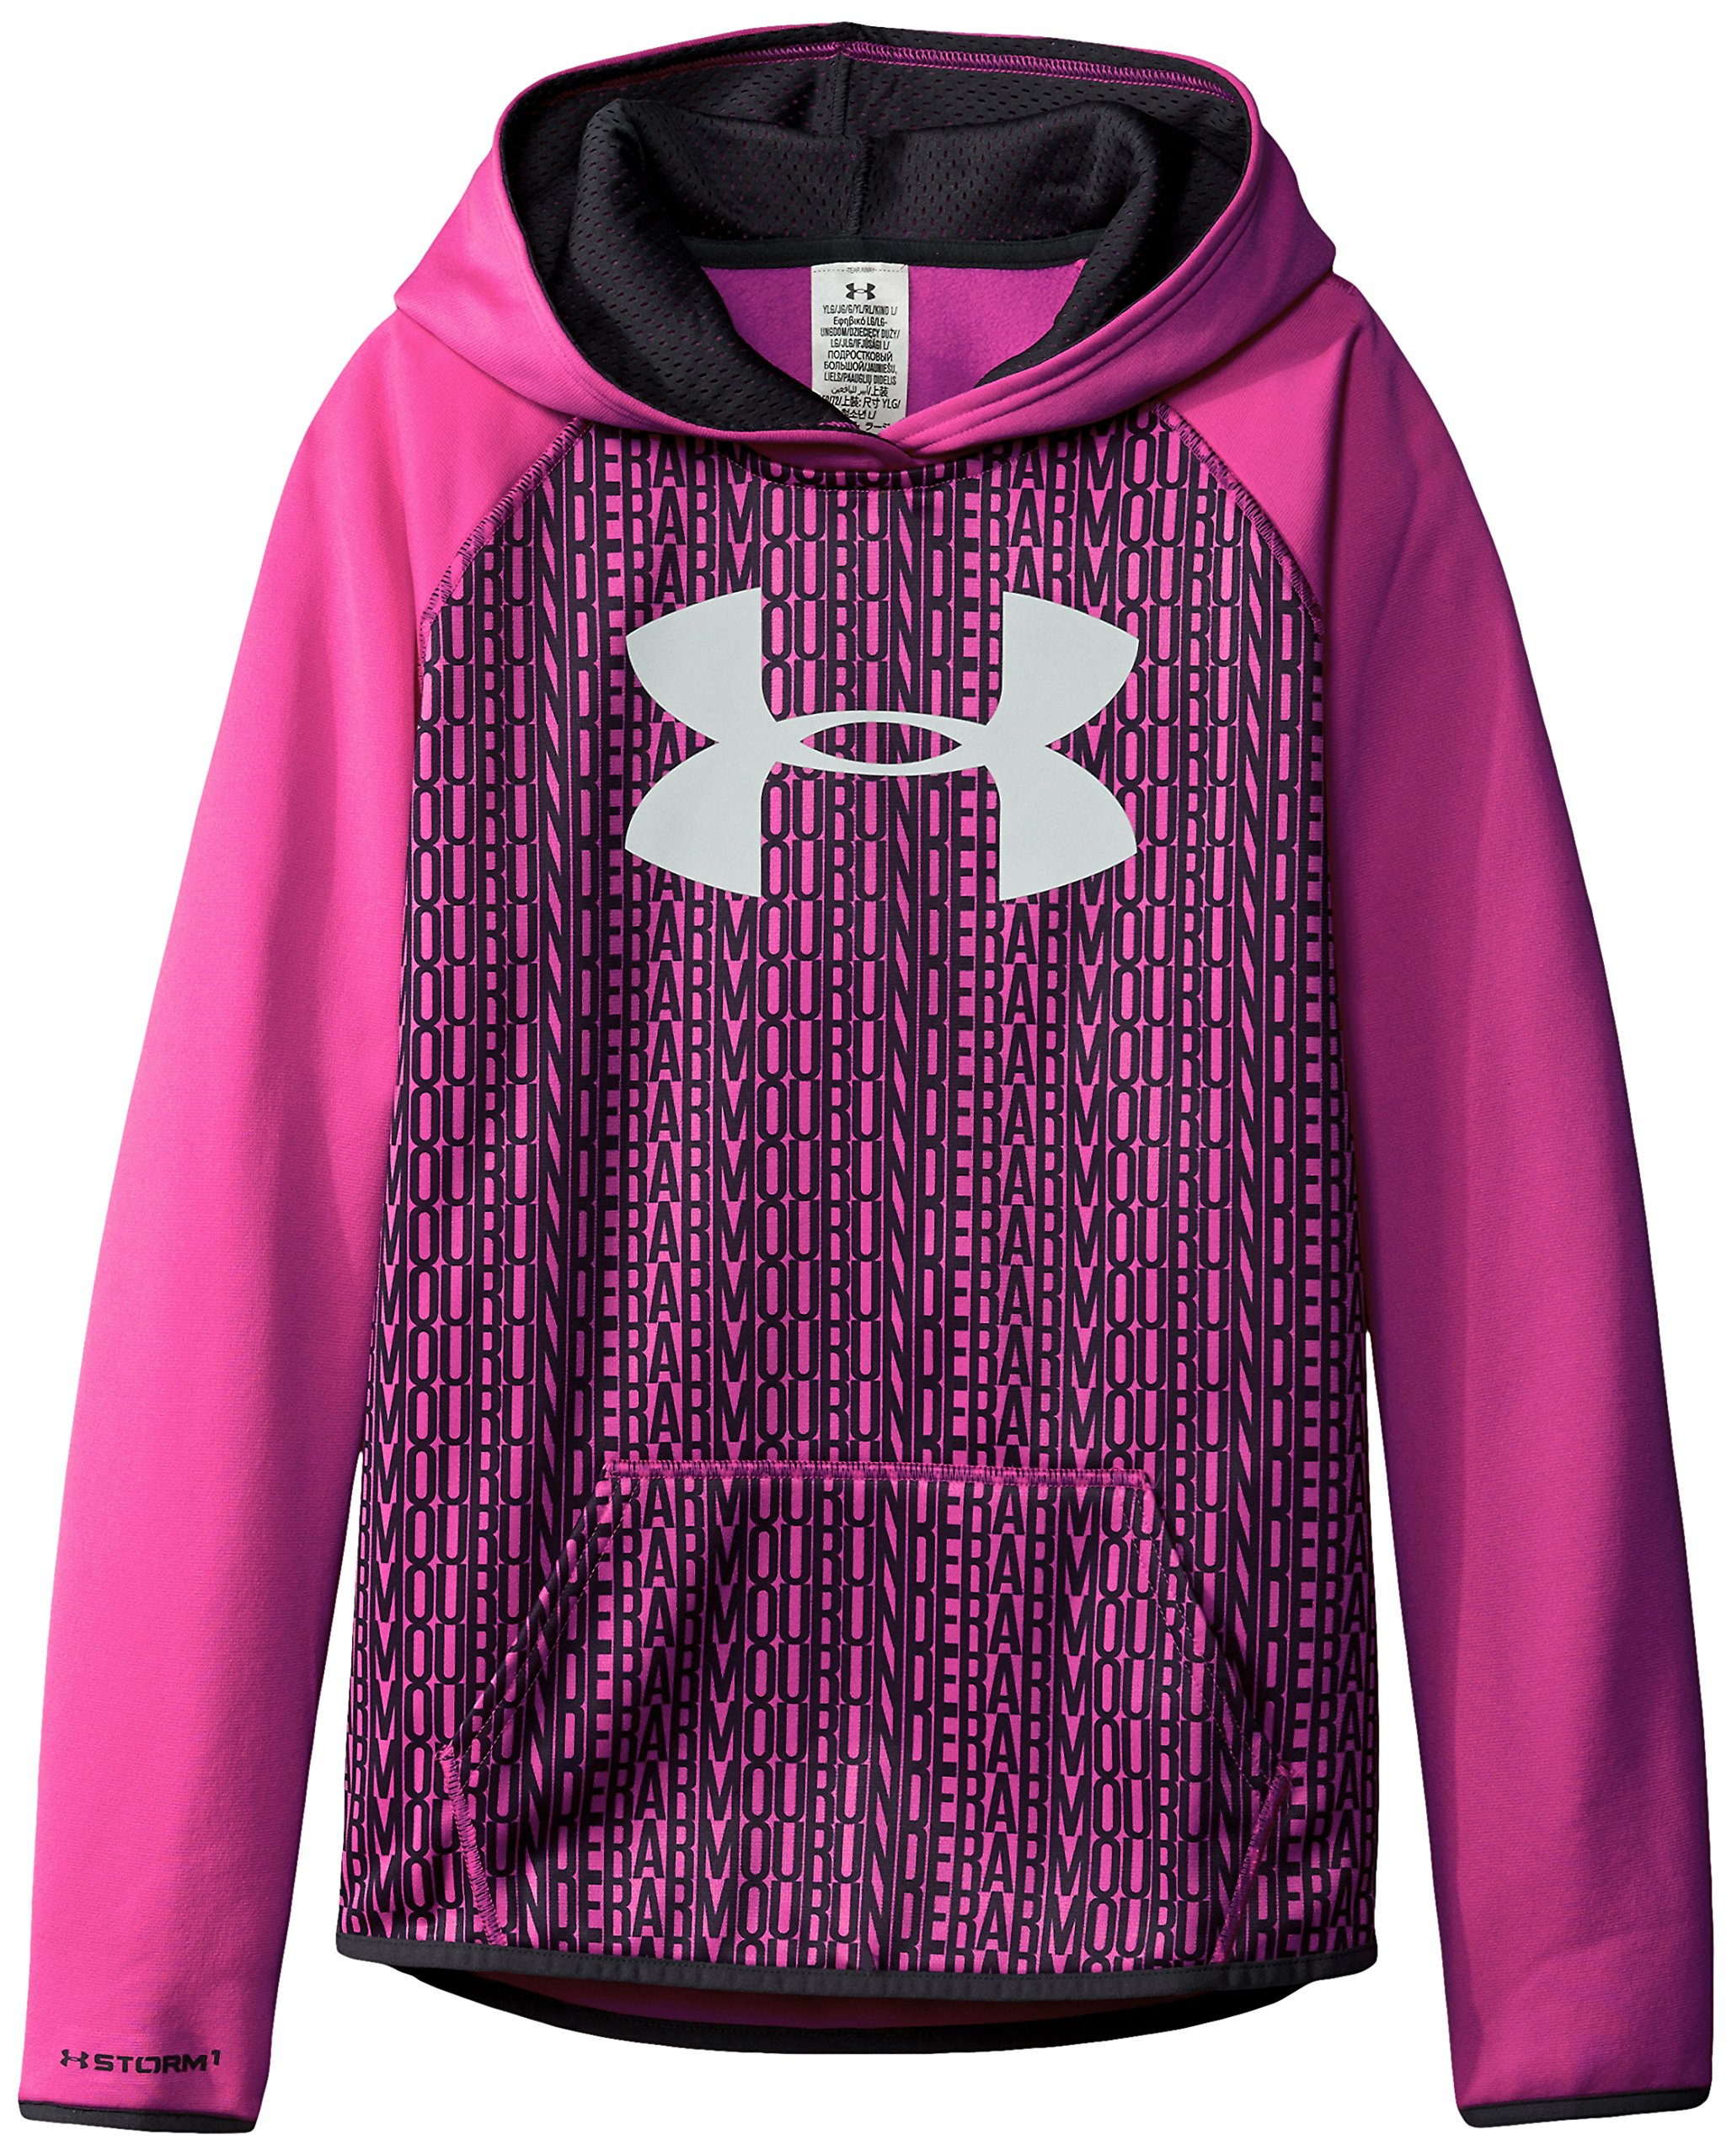 Under Armour Women's Armour Fleece Printed Big Logo Hoodie, Rebel Pink /Rebel Pink, Youth Large by Under Armour